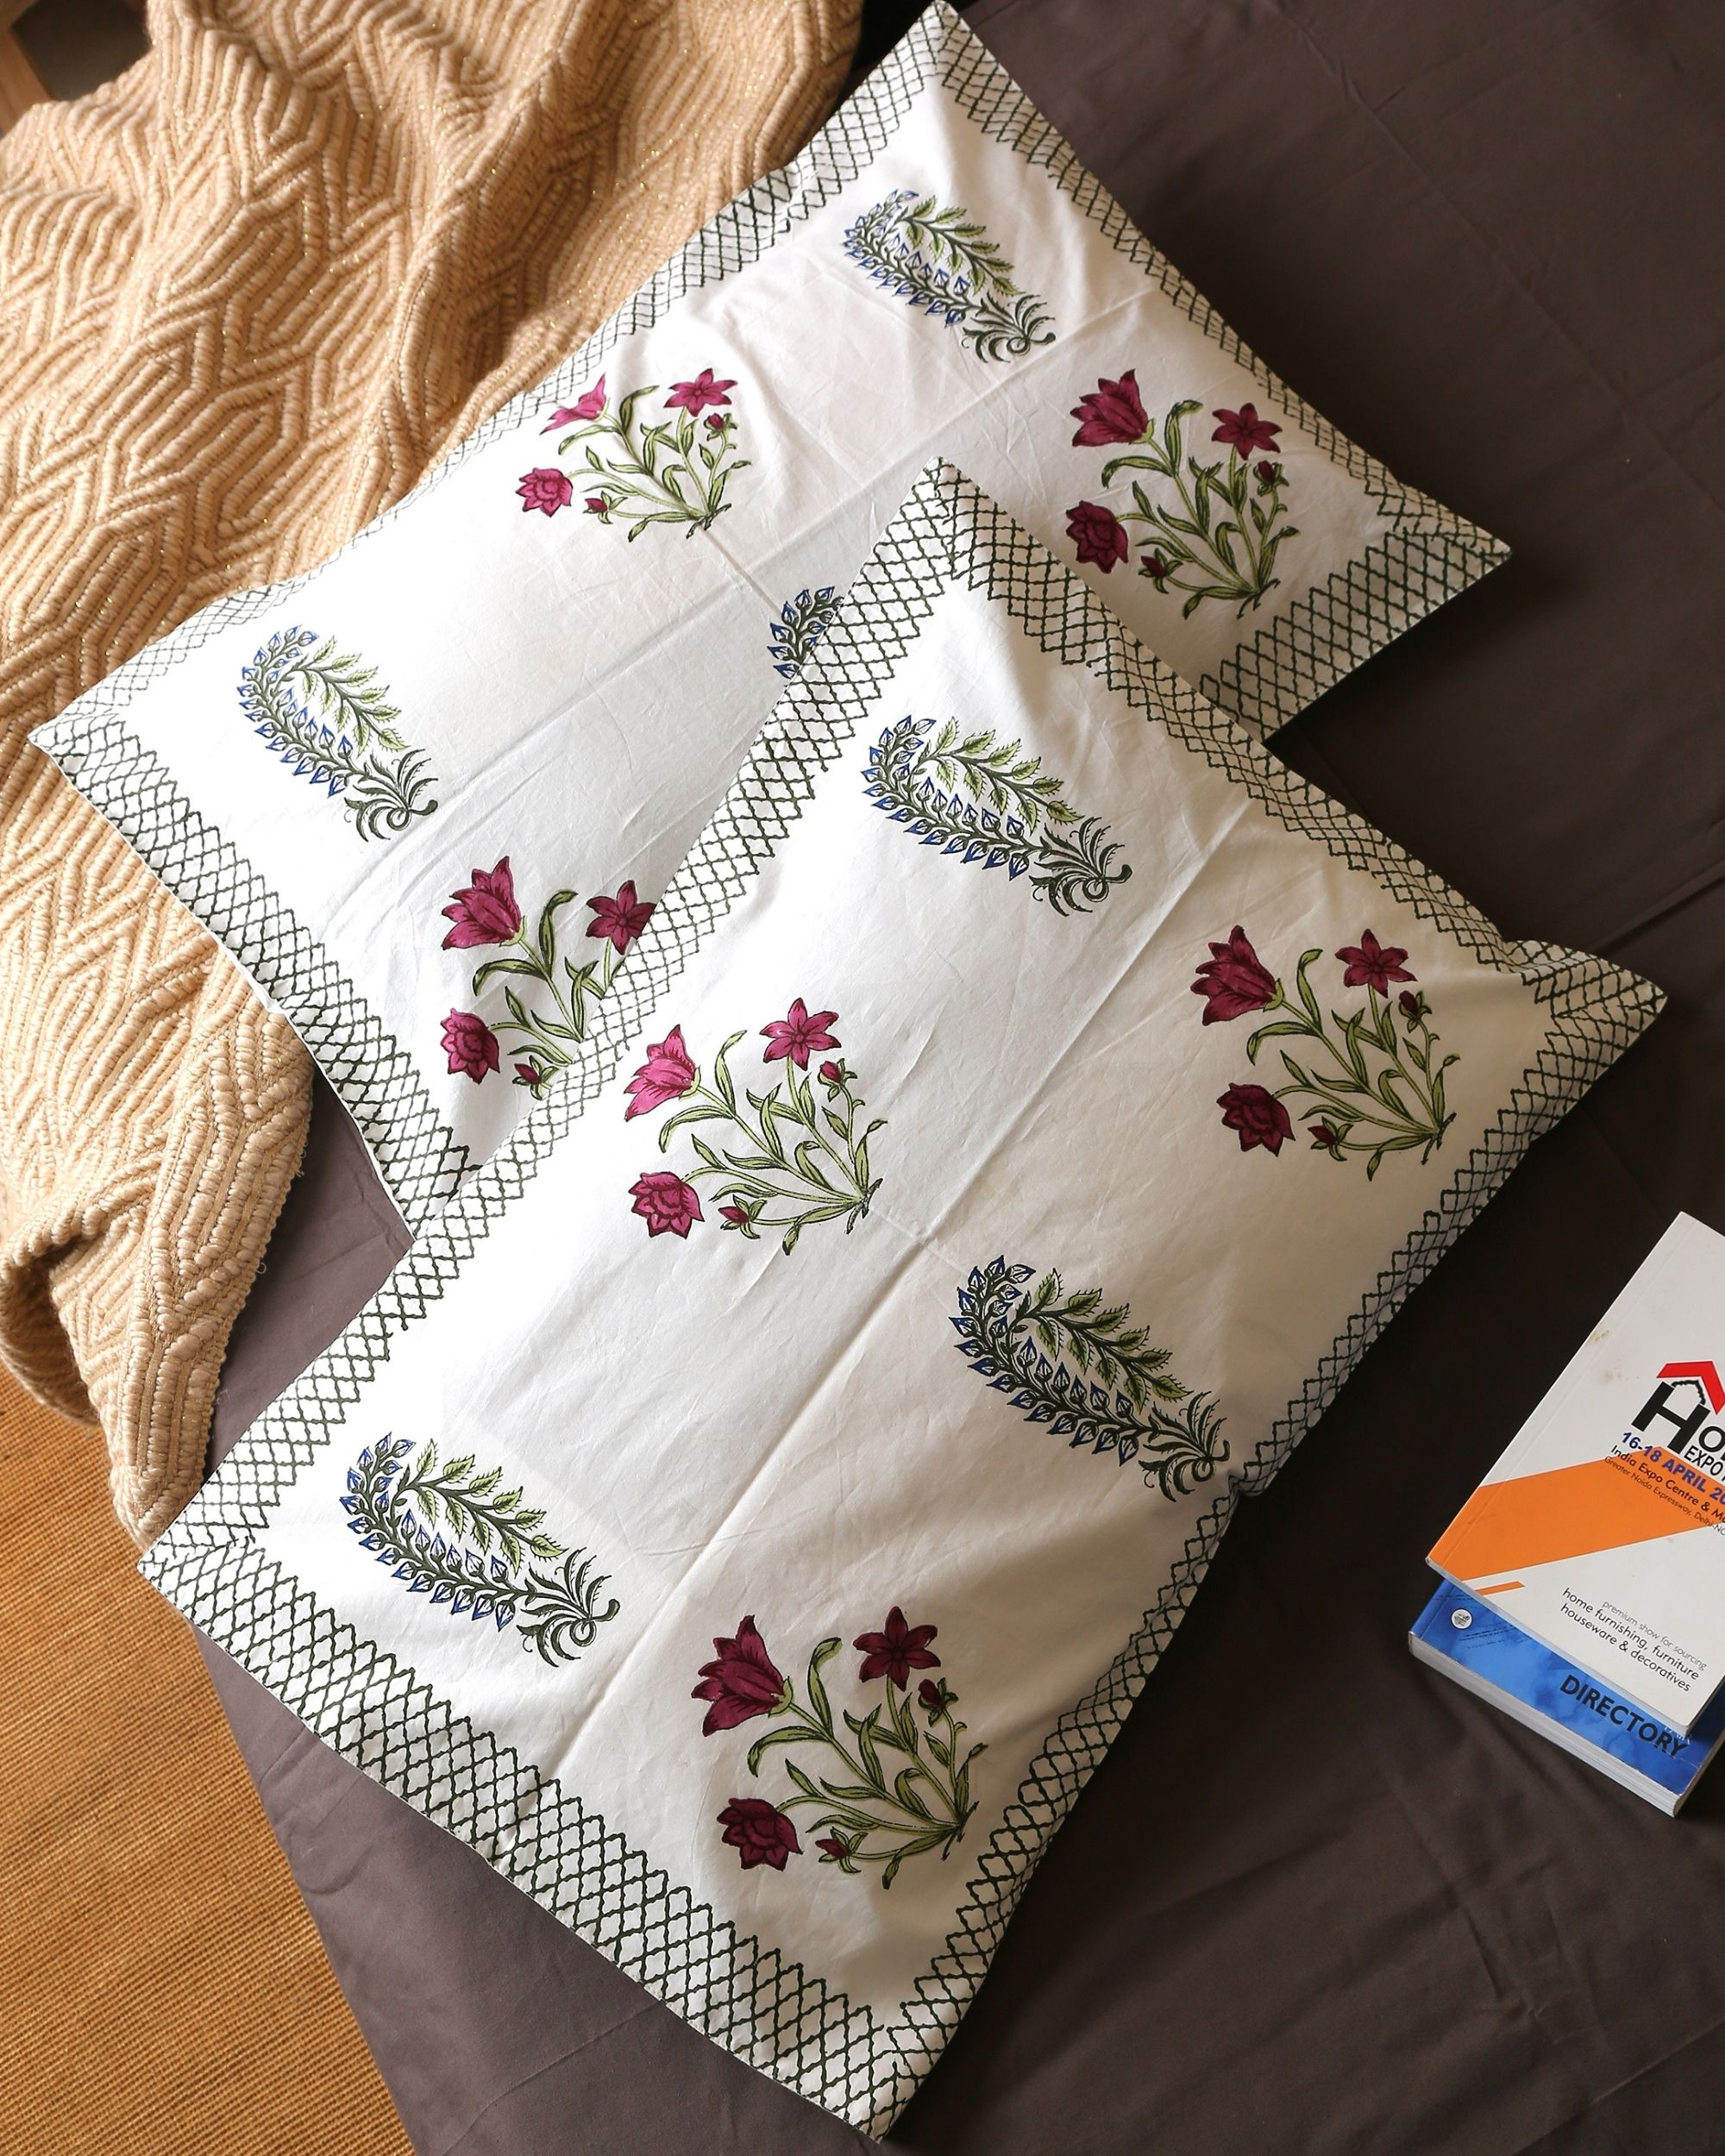 Burgundy cypress bouquet pillow covers - set of two